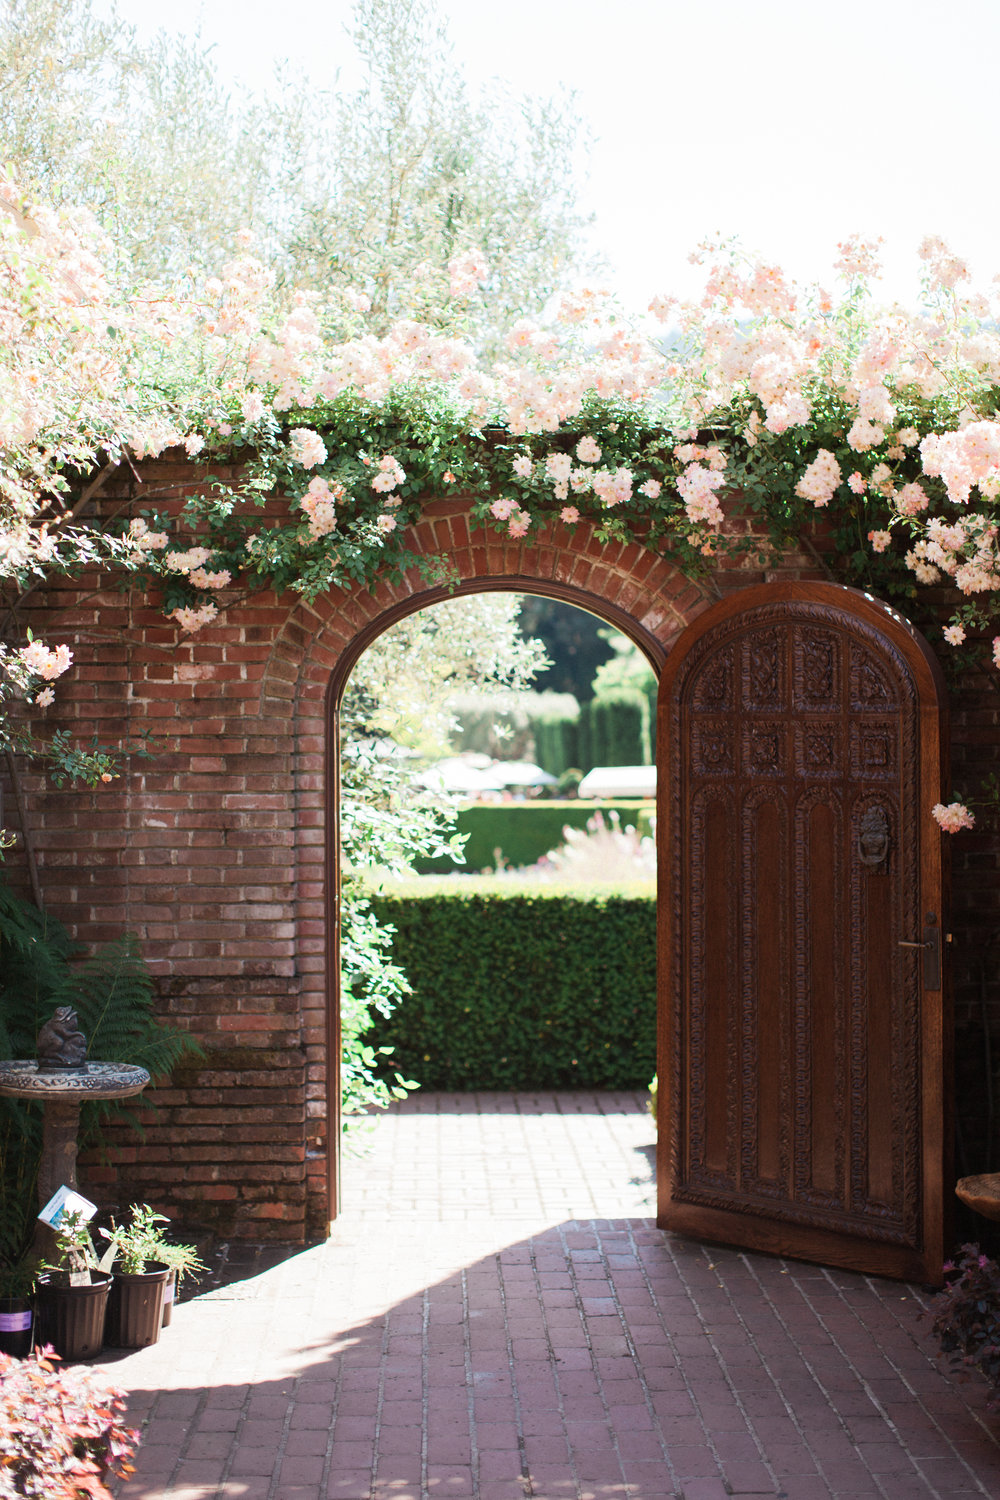 Brandon Sampson Photography. Filoli Gardens Wedding Venue. Film Photography.